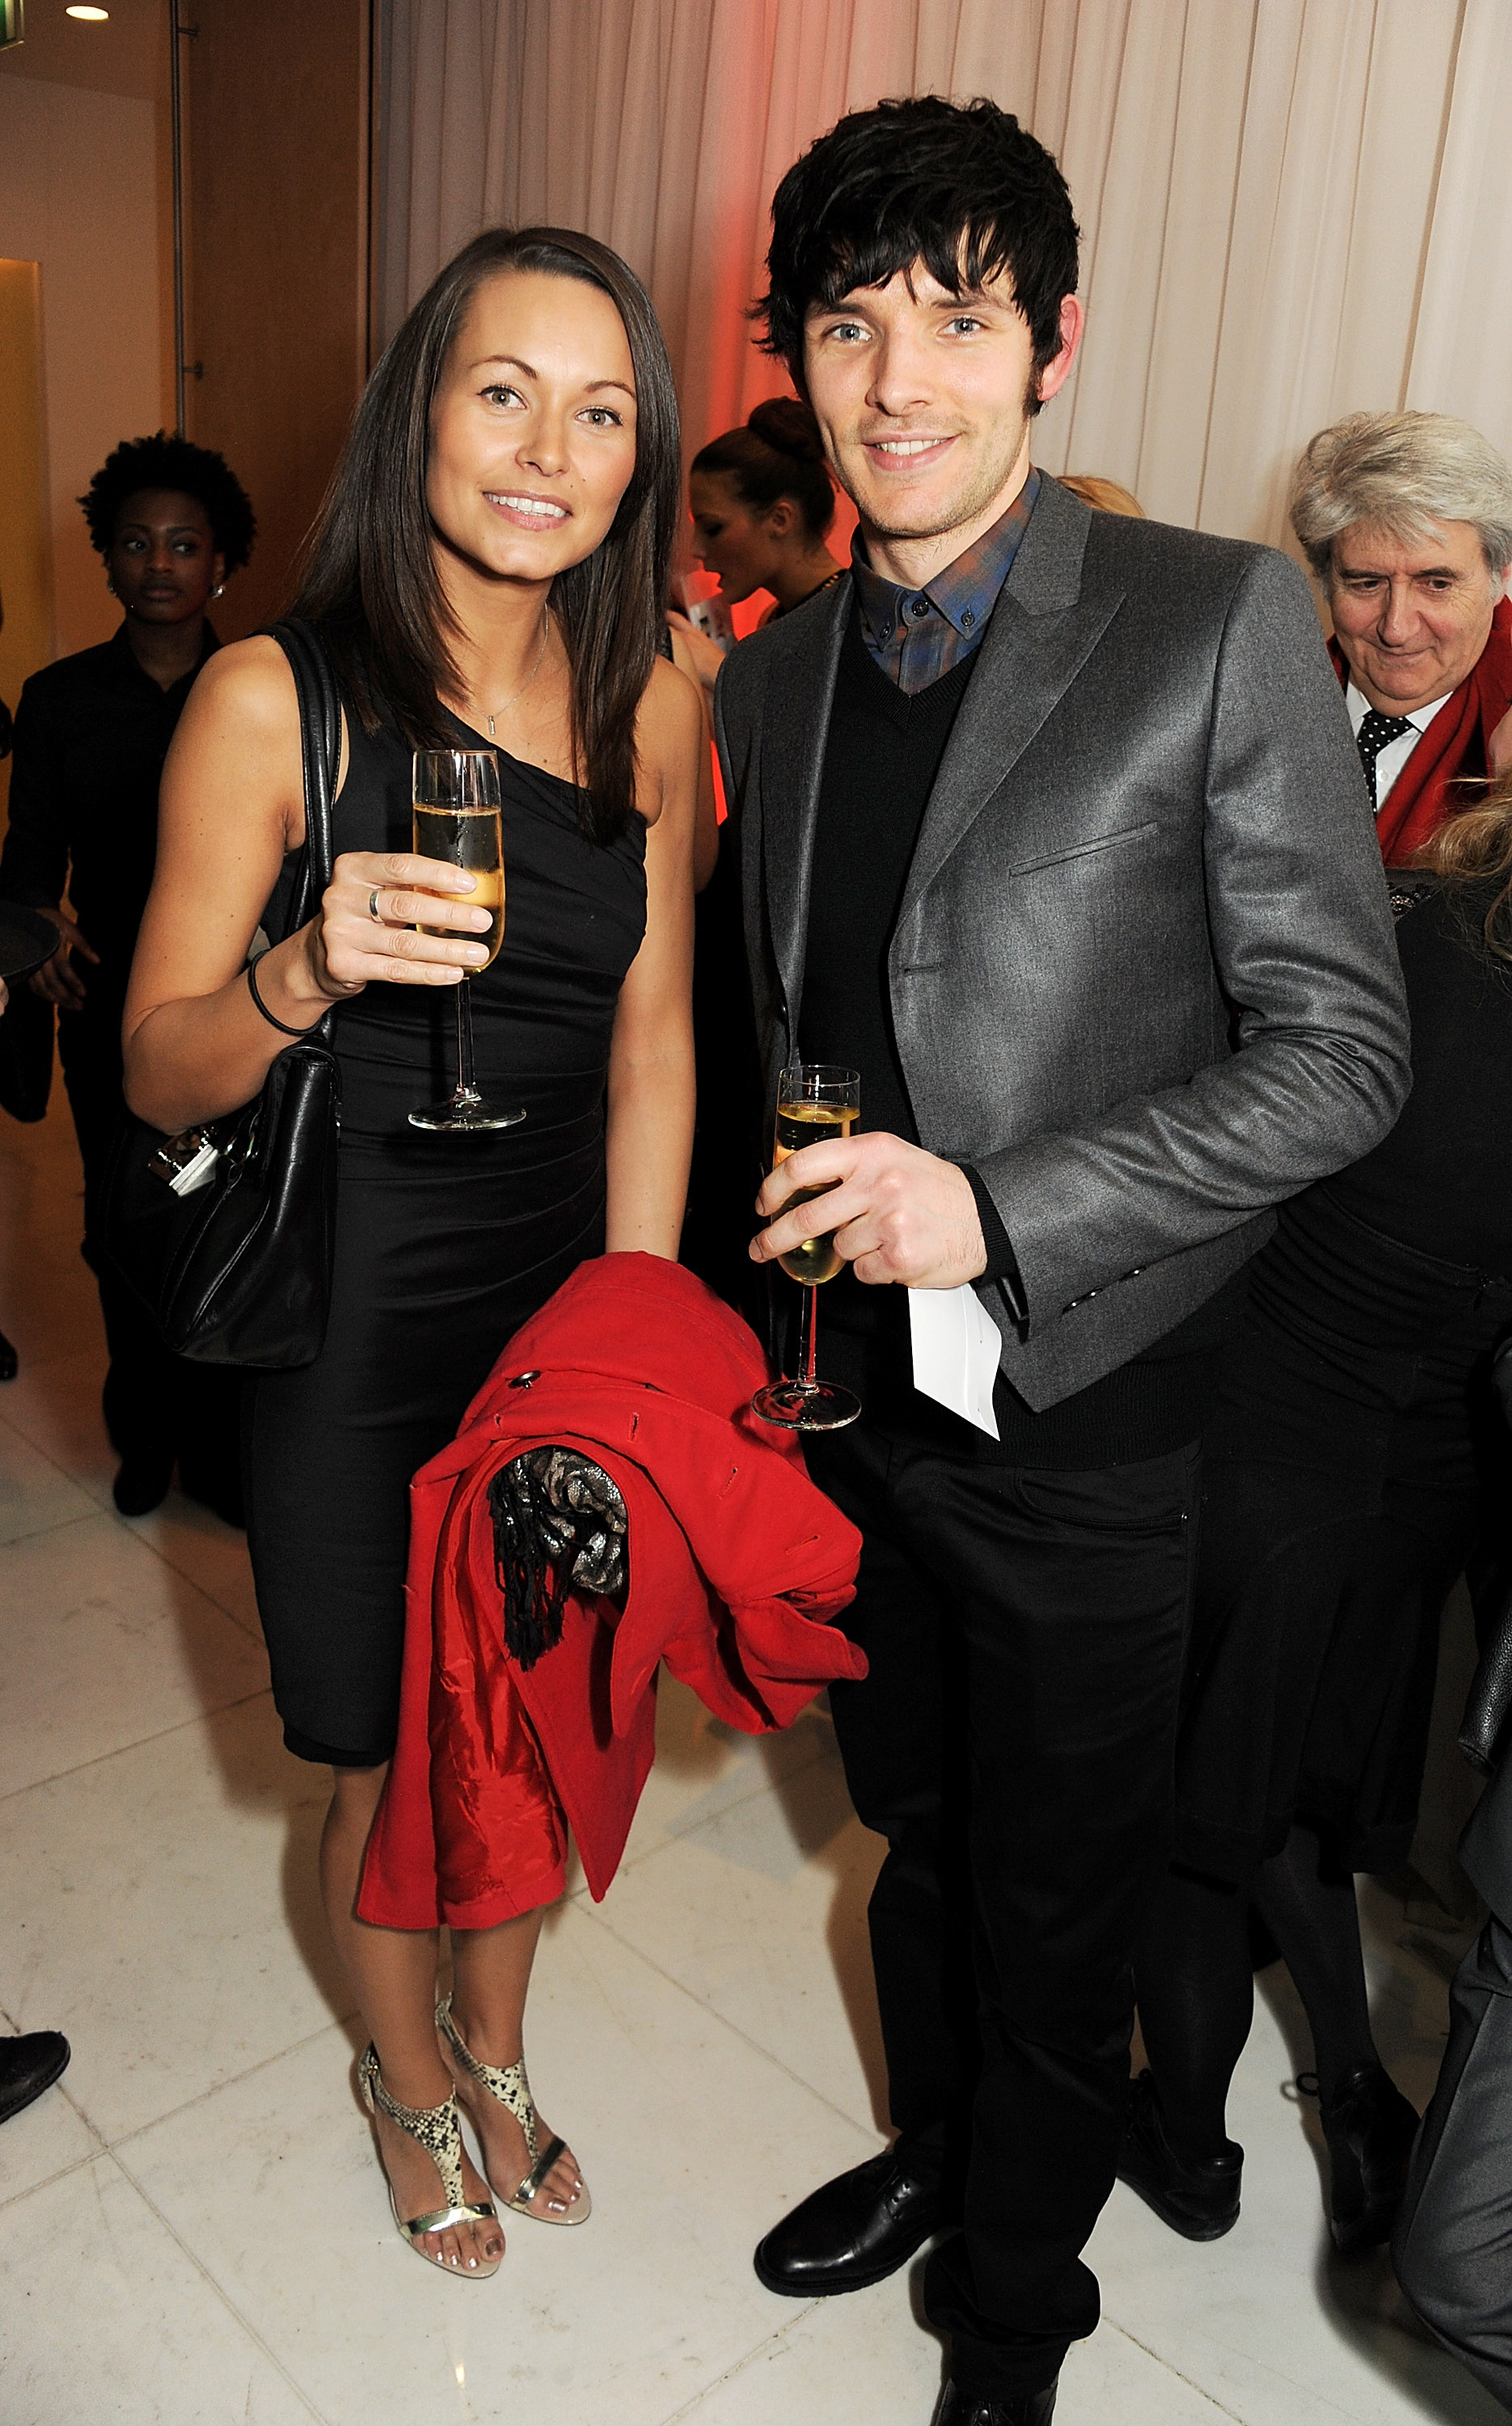 Colin at National Ballet 크리스마스 party